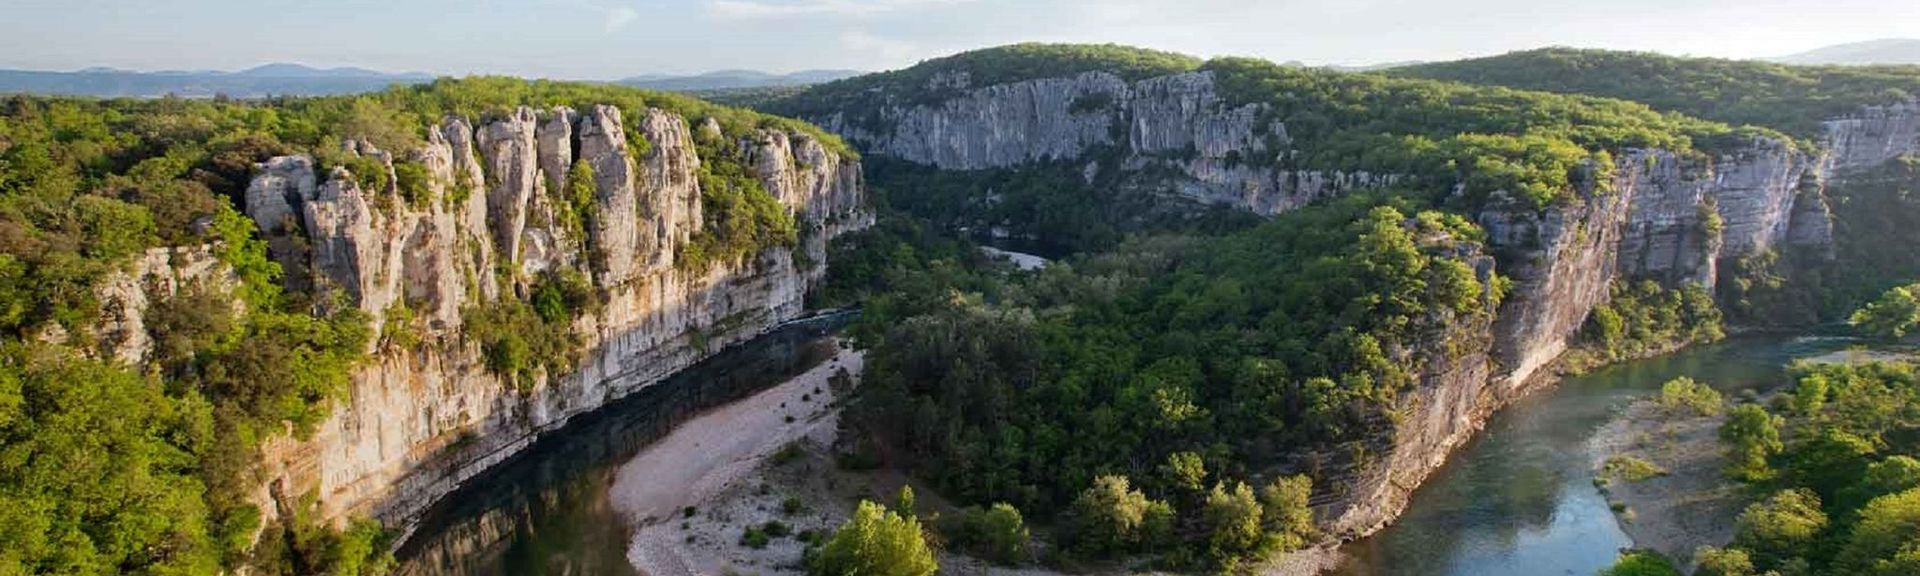 Salavas, Ardeche (department), France